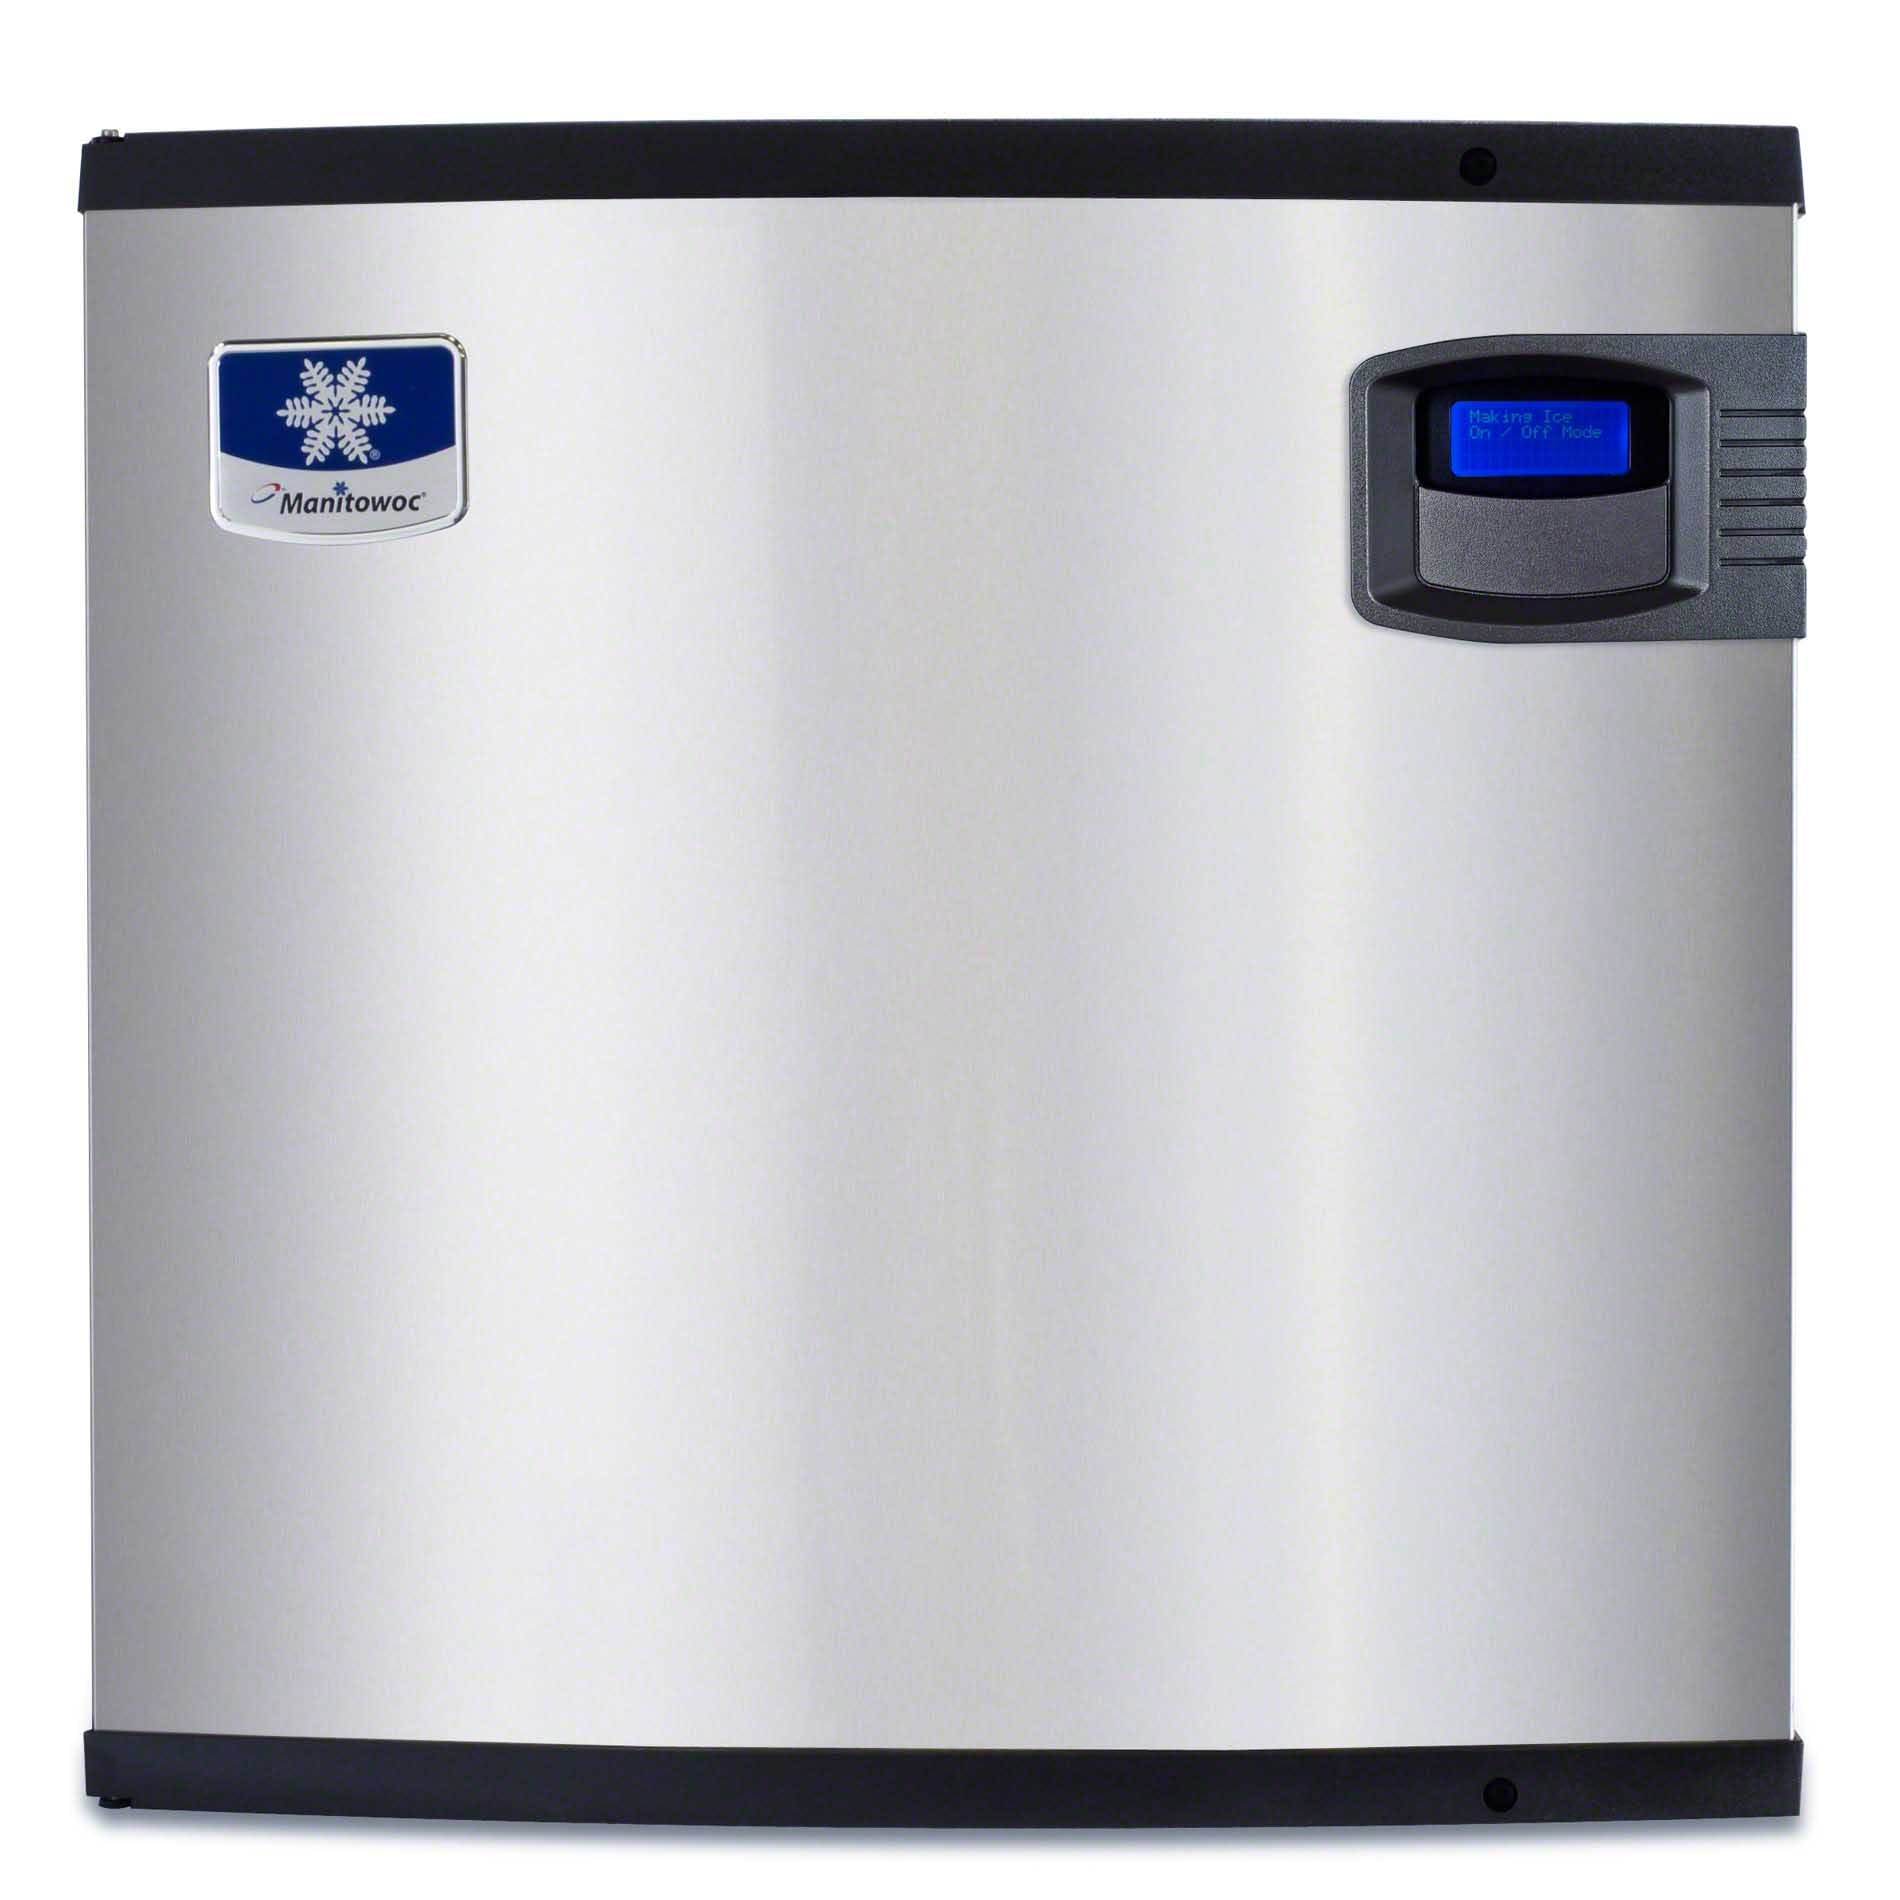 Manitowoc - ID-0323W 330 lb Full Size Cube Ice Machine - Indigo Series - sold by Food Service Warehouse